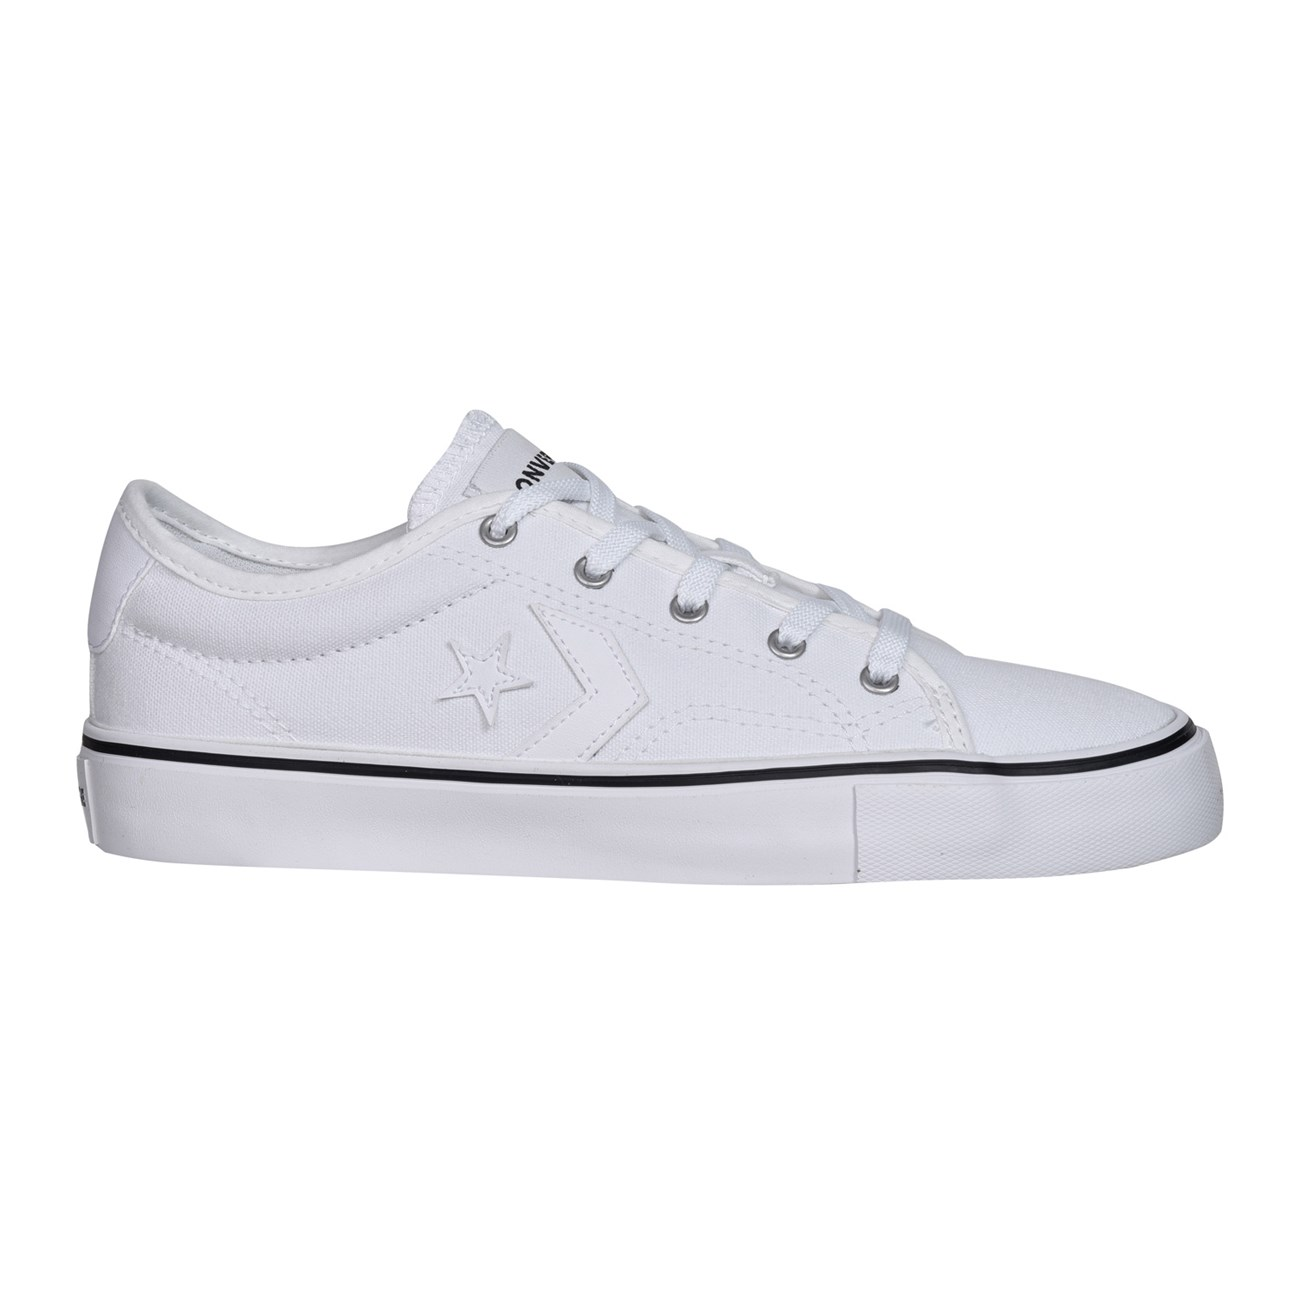 ed2ac55ef8e CONVERSE ONE STAR REPLAY < ONE STAR REPLAY | INTERSPORT